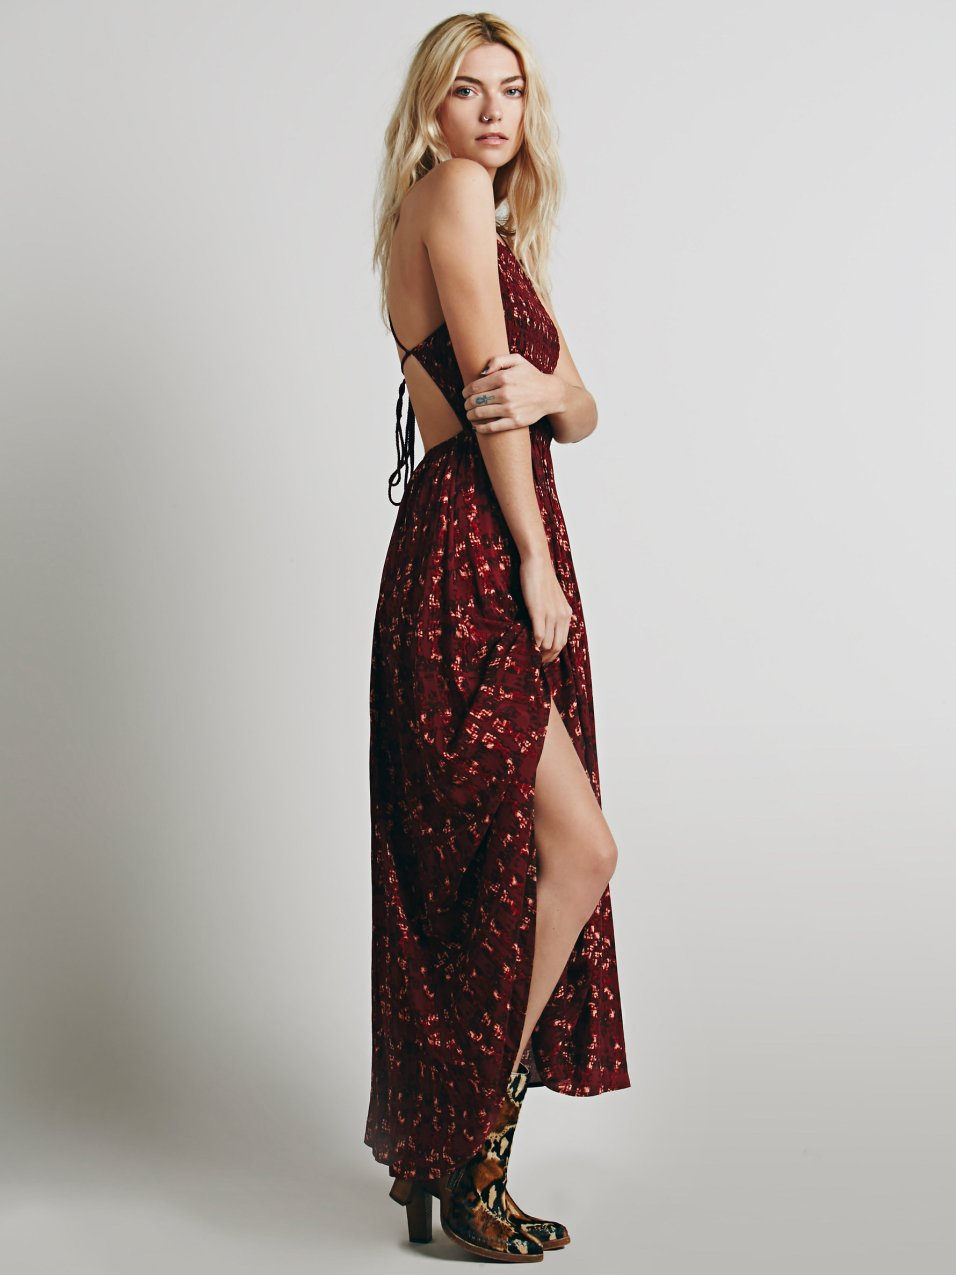 http://www.freepeople.co.uk/clothes-dresses-maxi-dresses/sugar-town-printed-maxi/